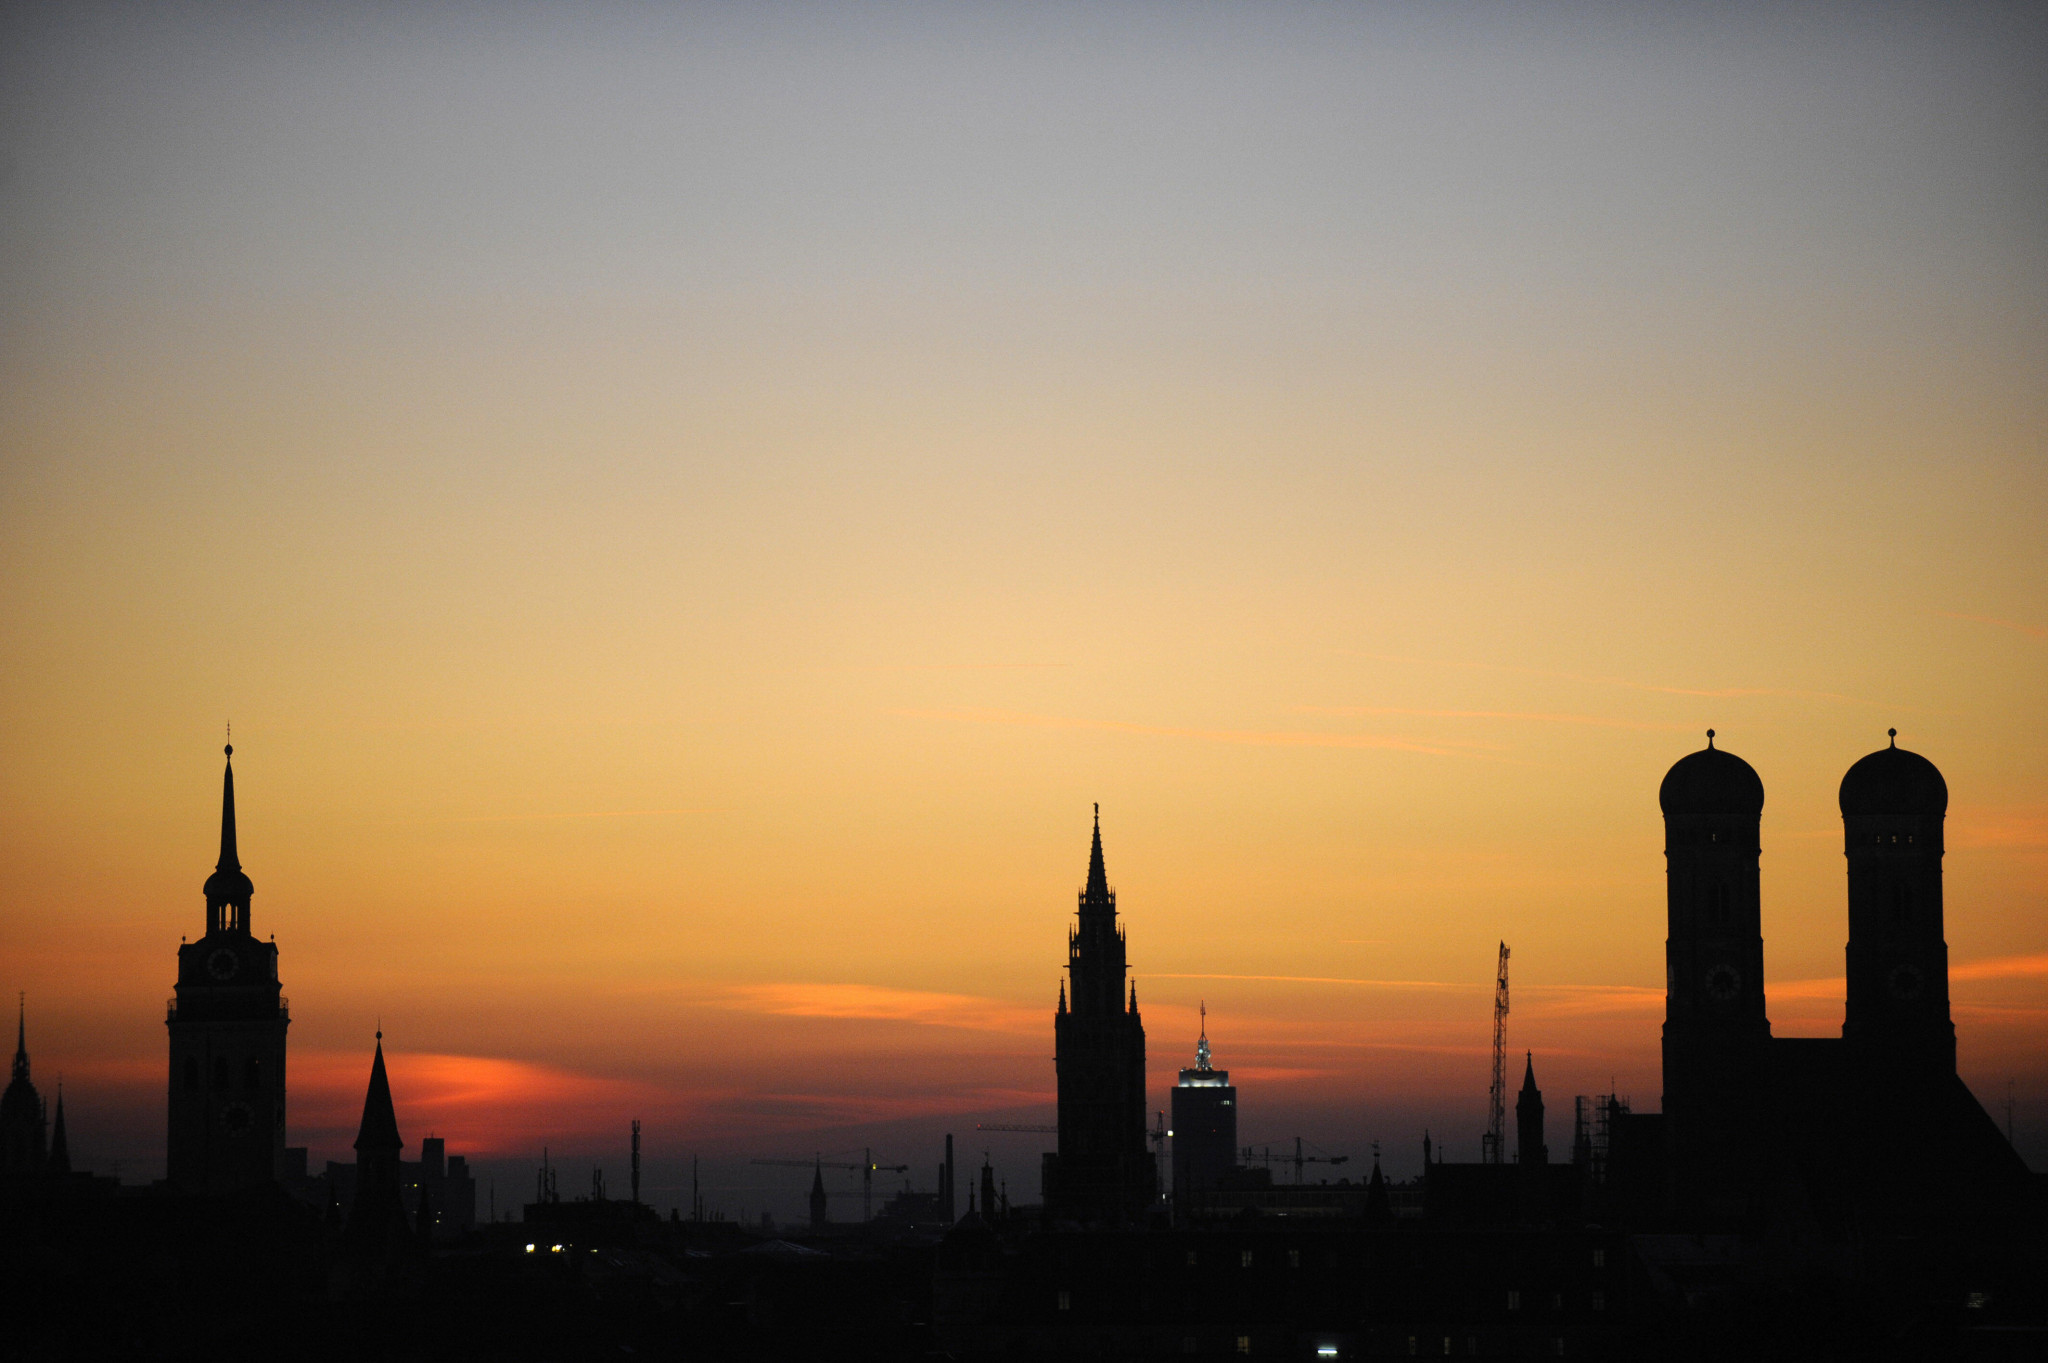 Munich City Council agrees to bid for 2022 European Championships